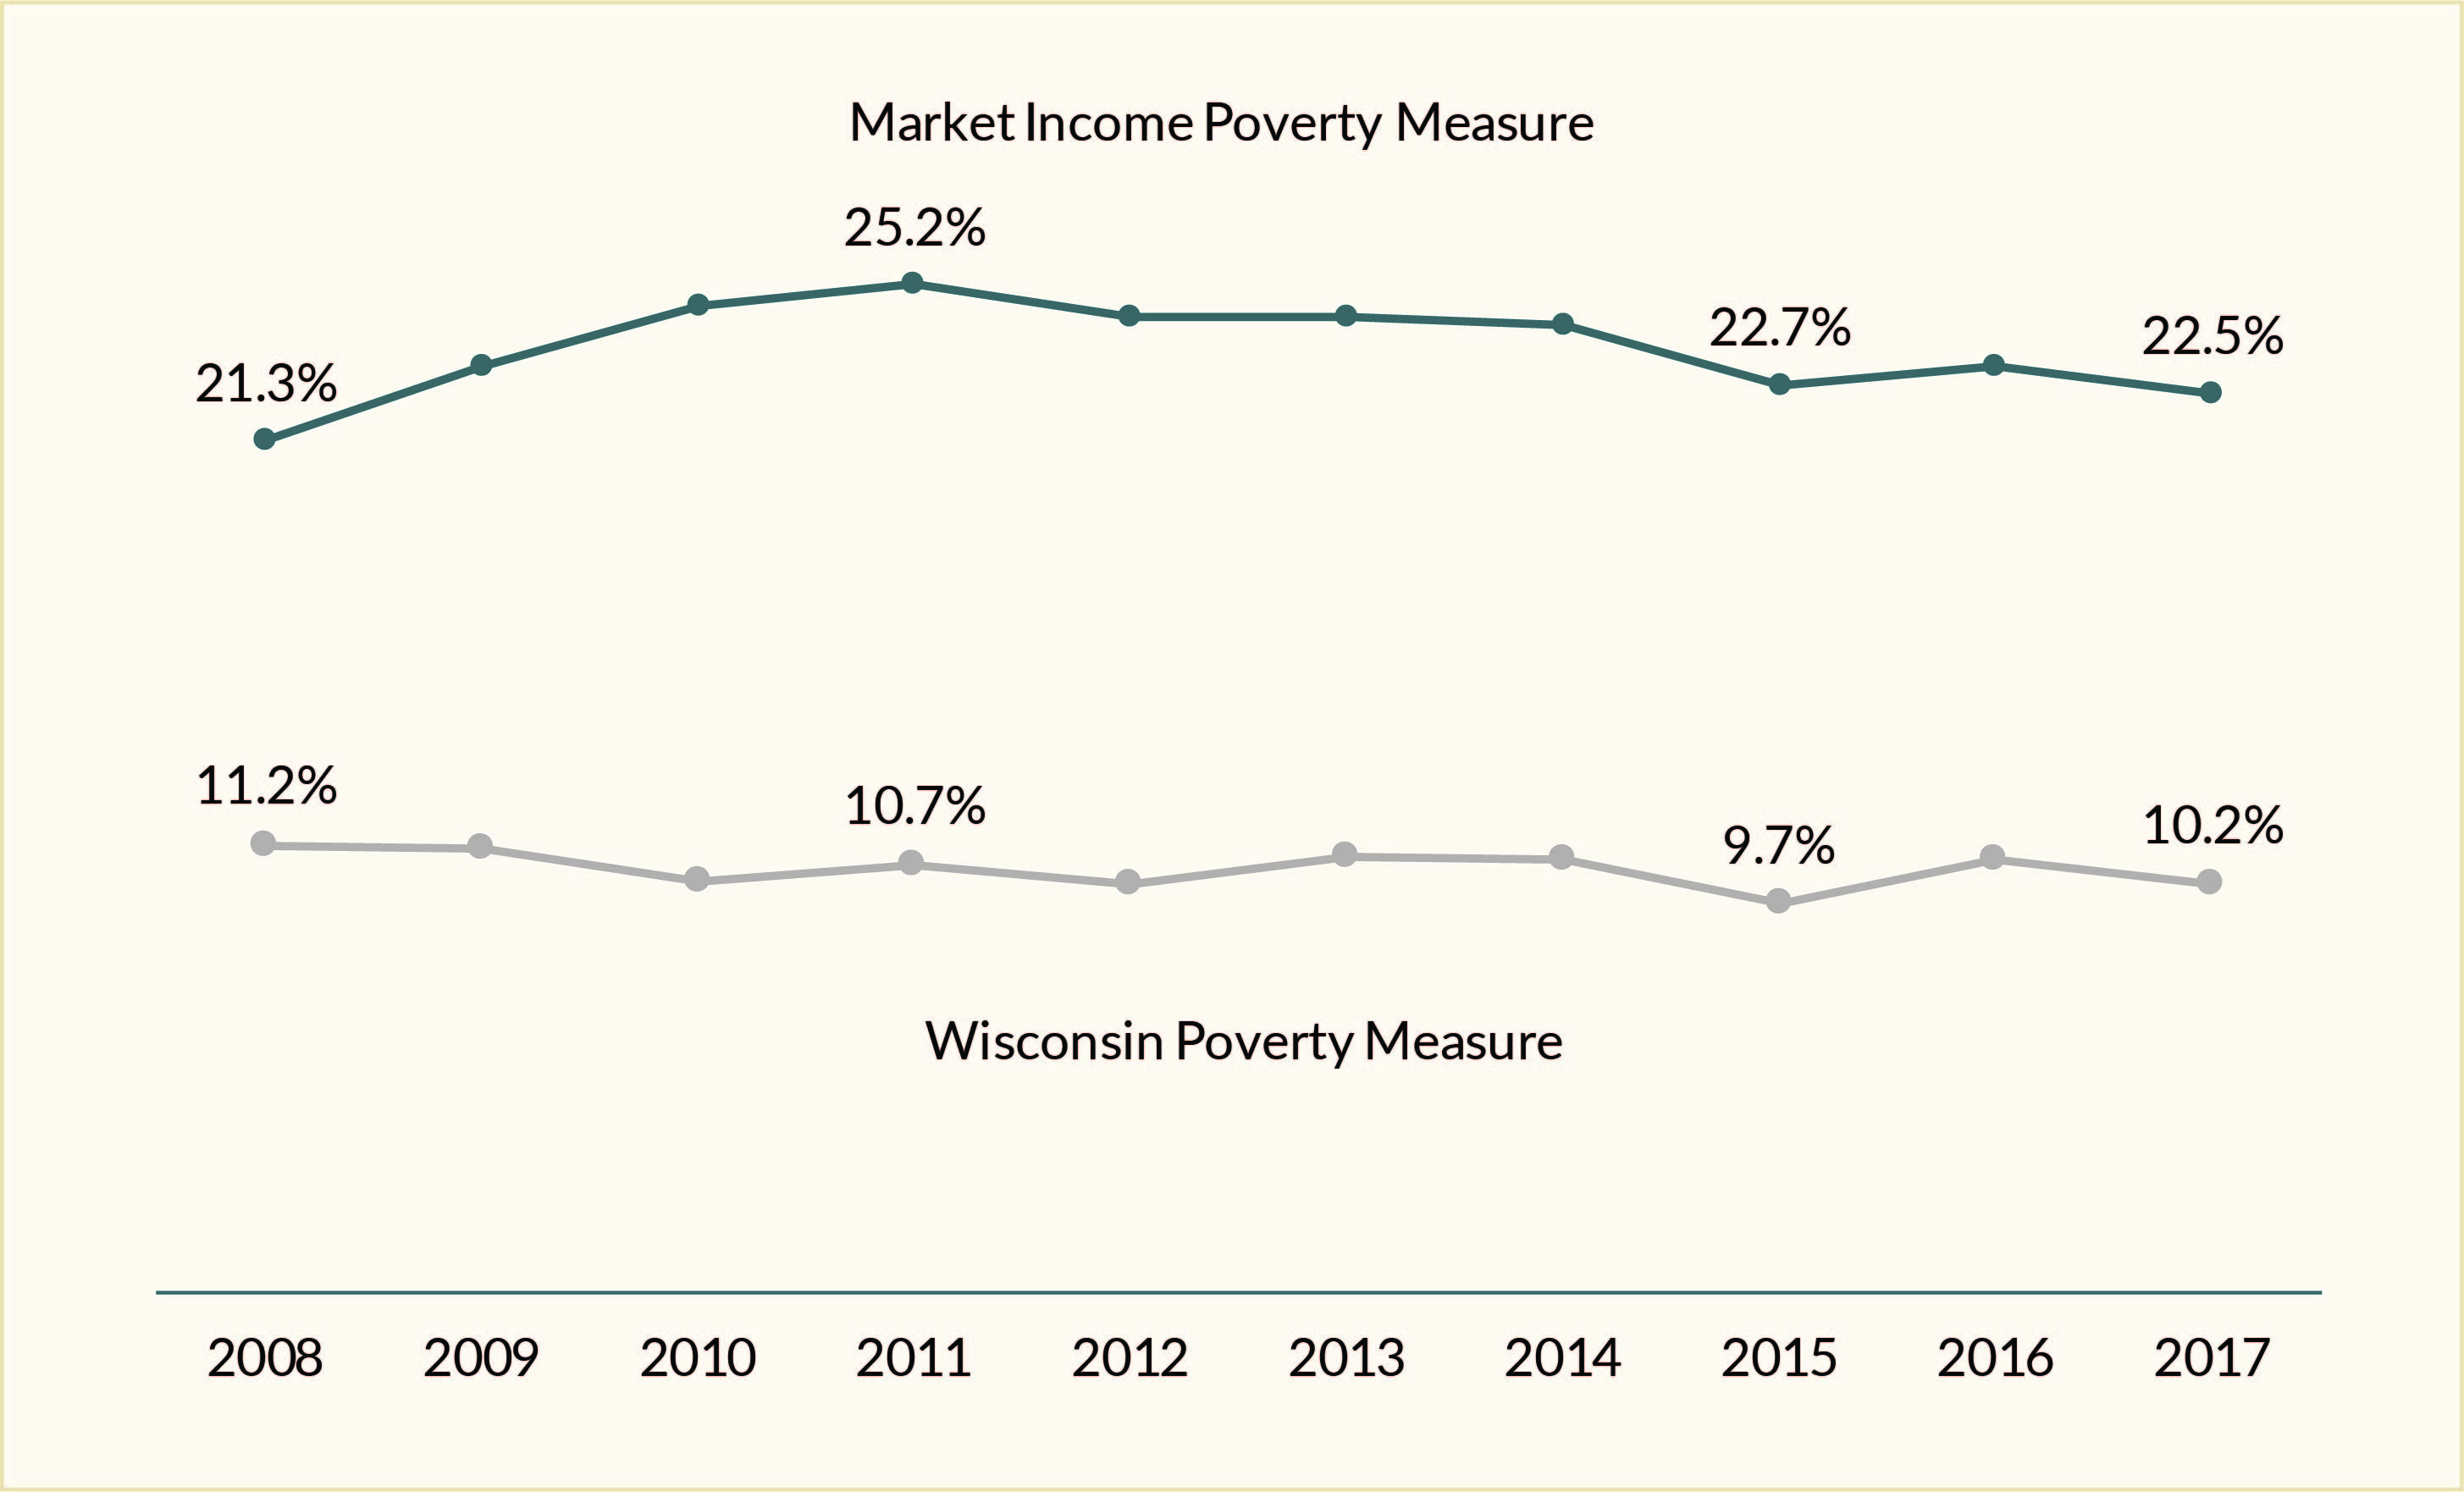 Figure 2. Wisconsin-specific measures of poverty have been flat since the end of the Great Recession. Source: T. M. Smeeding and K. A Thornton. Wisconsin Poverty Report: Treading Water in 2017. Institute for Research on Poverty, University of Wisconsin–Madison, June 2019.